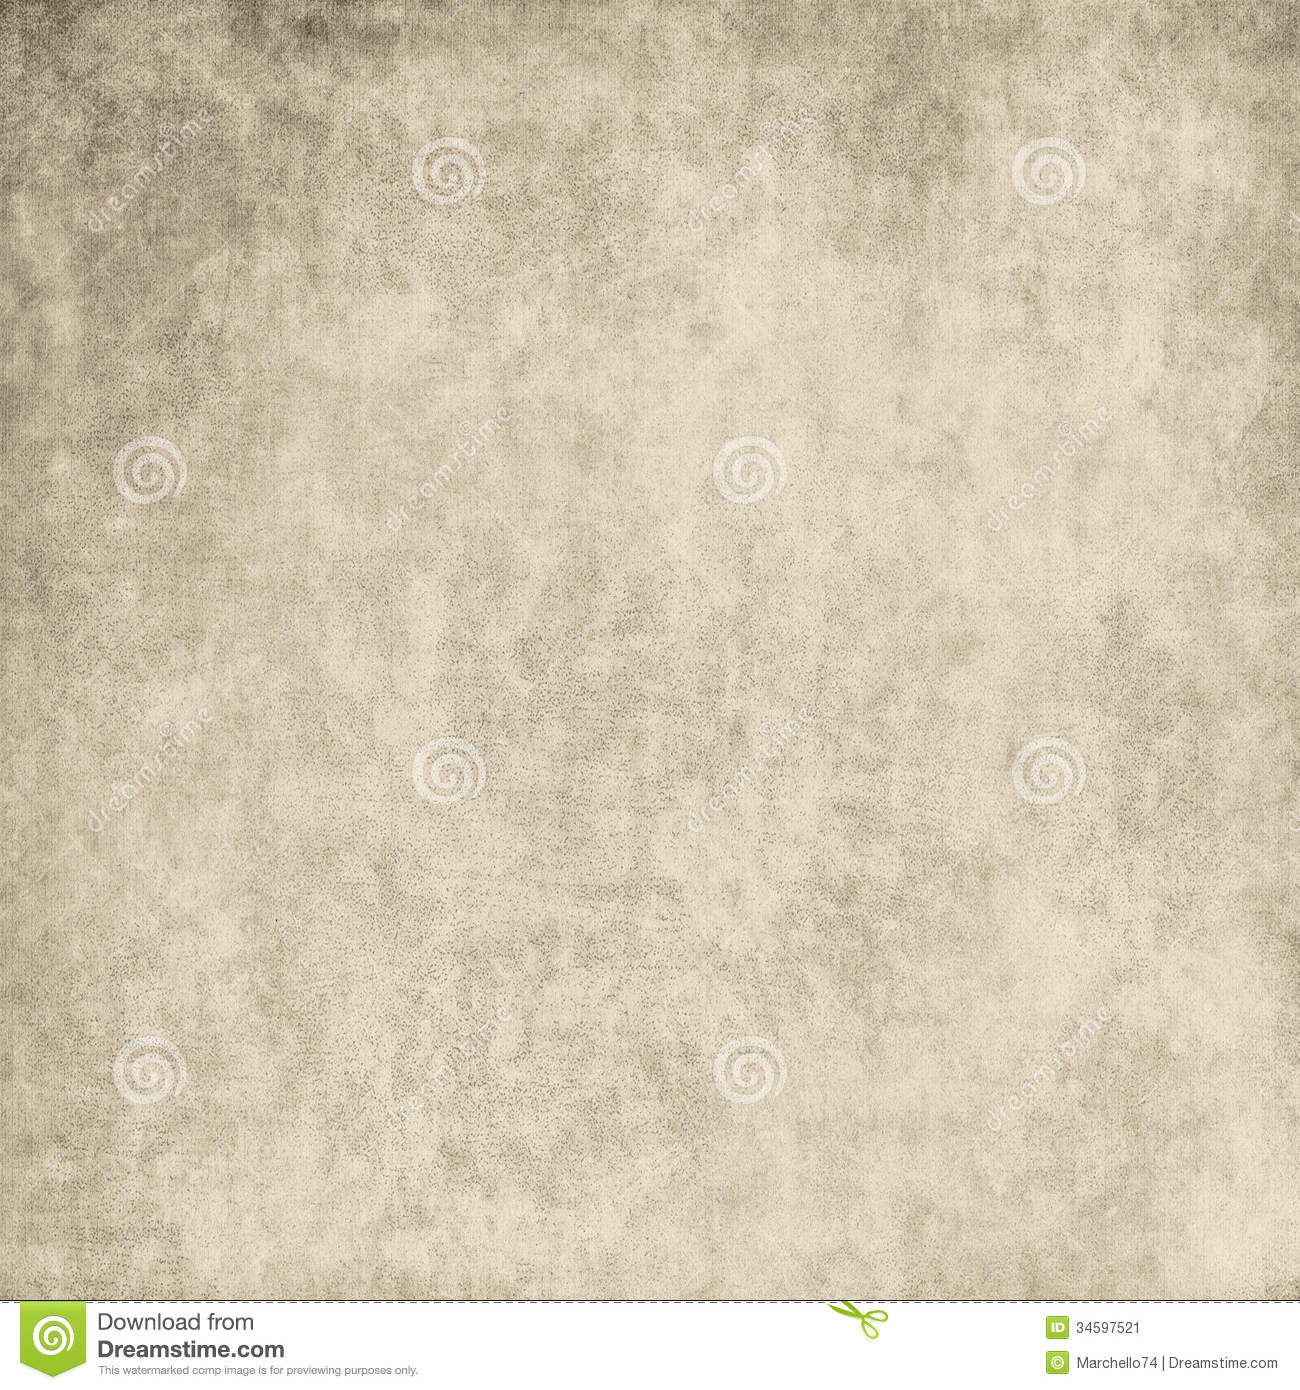 old vintage paper background stock image - image of gray, rough